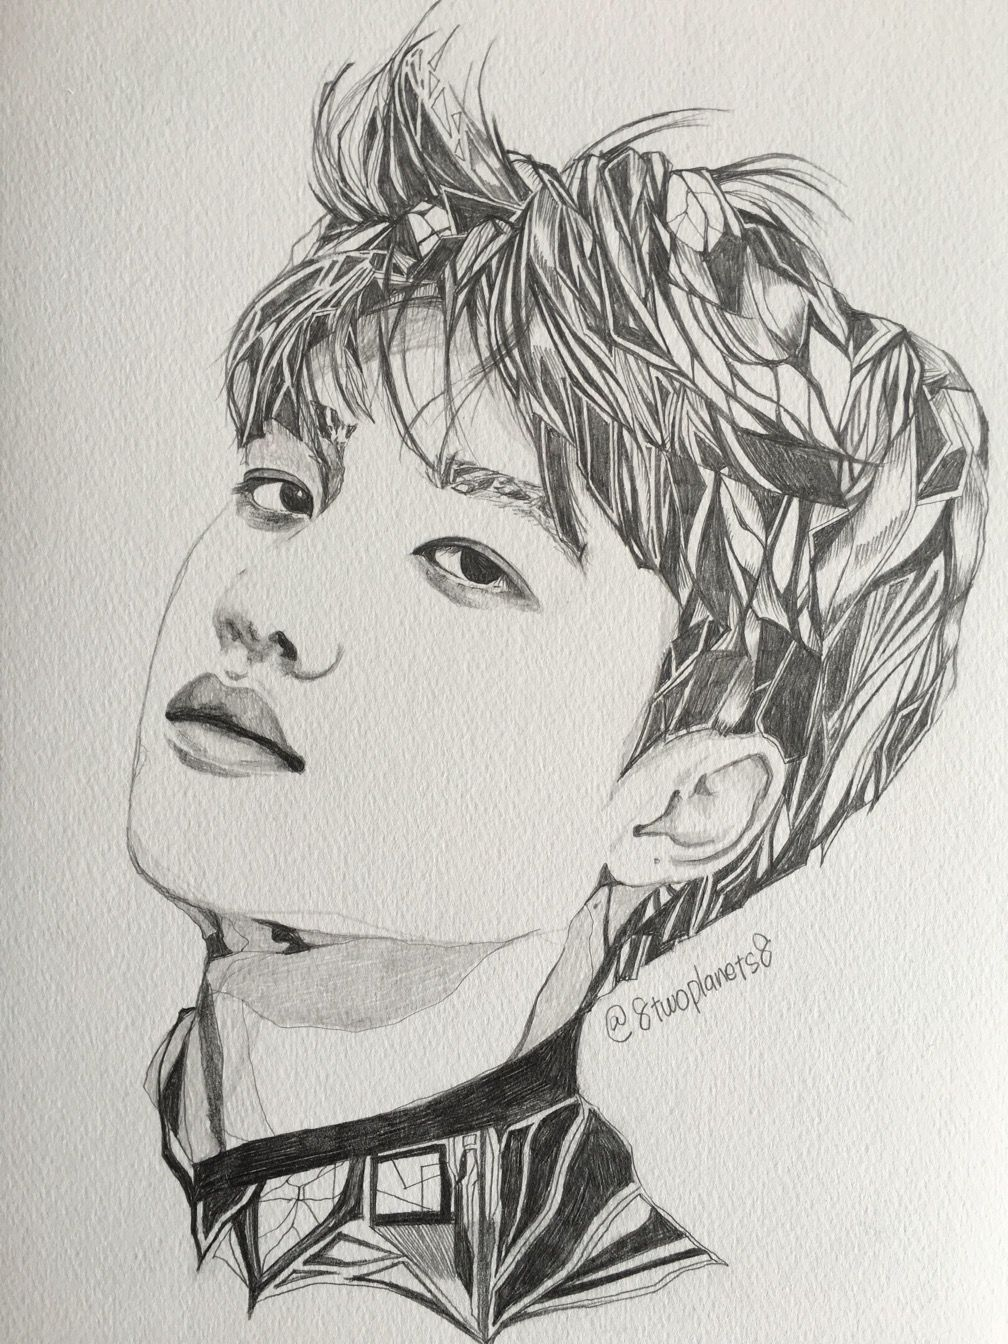 Pin by 【a s h】 on Kpop Fanart Exo fan art, Kpop drawings